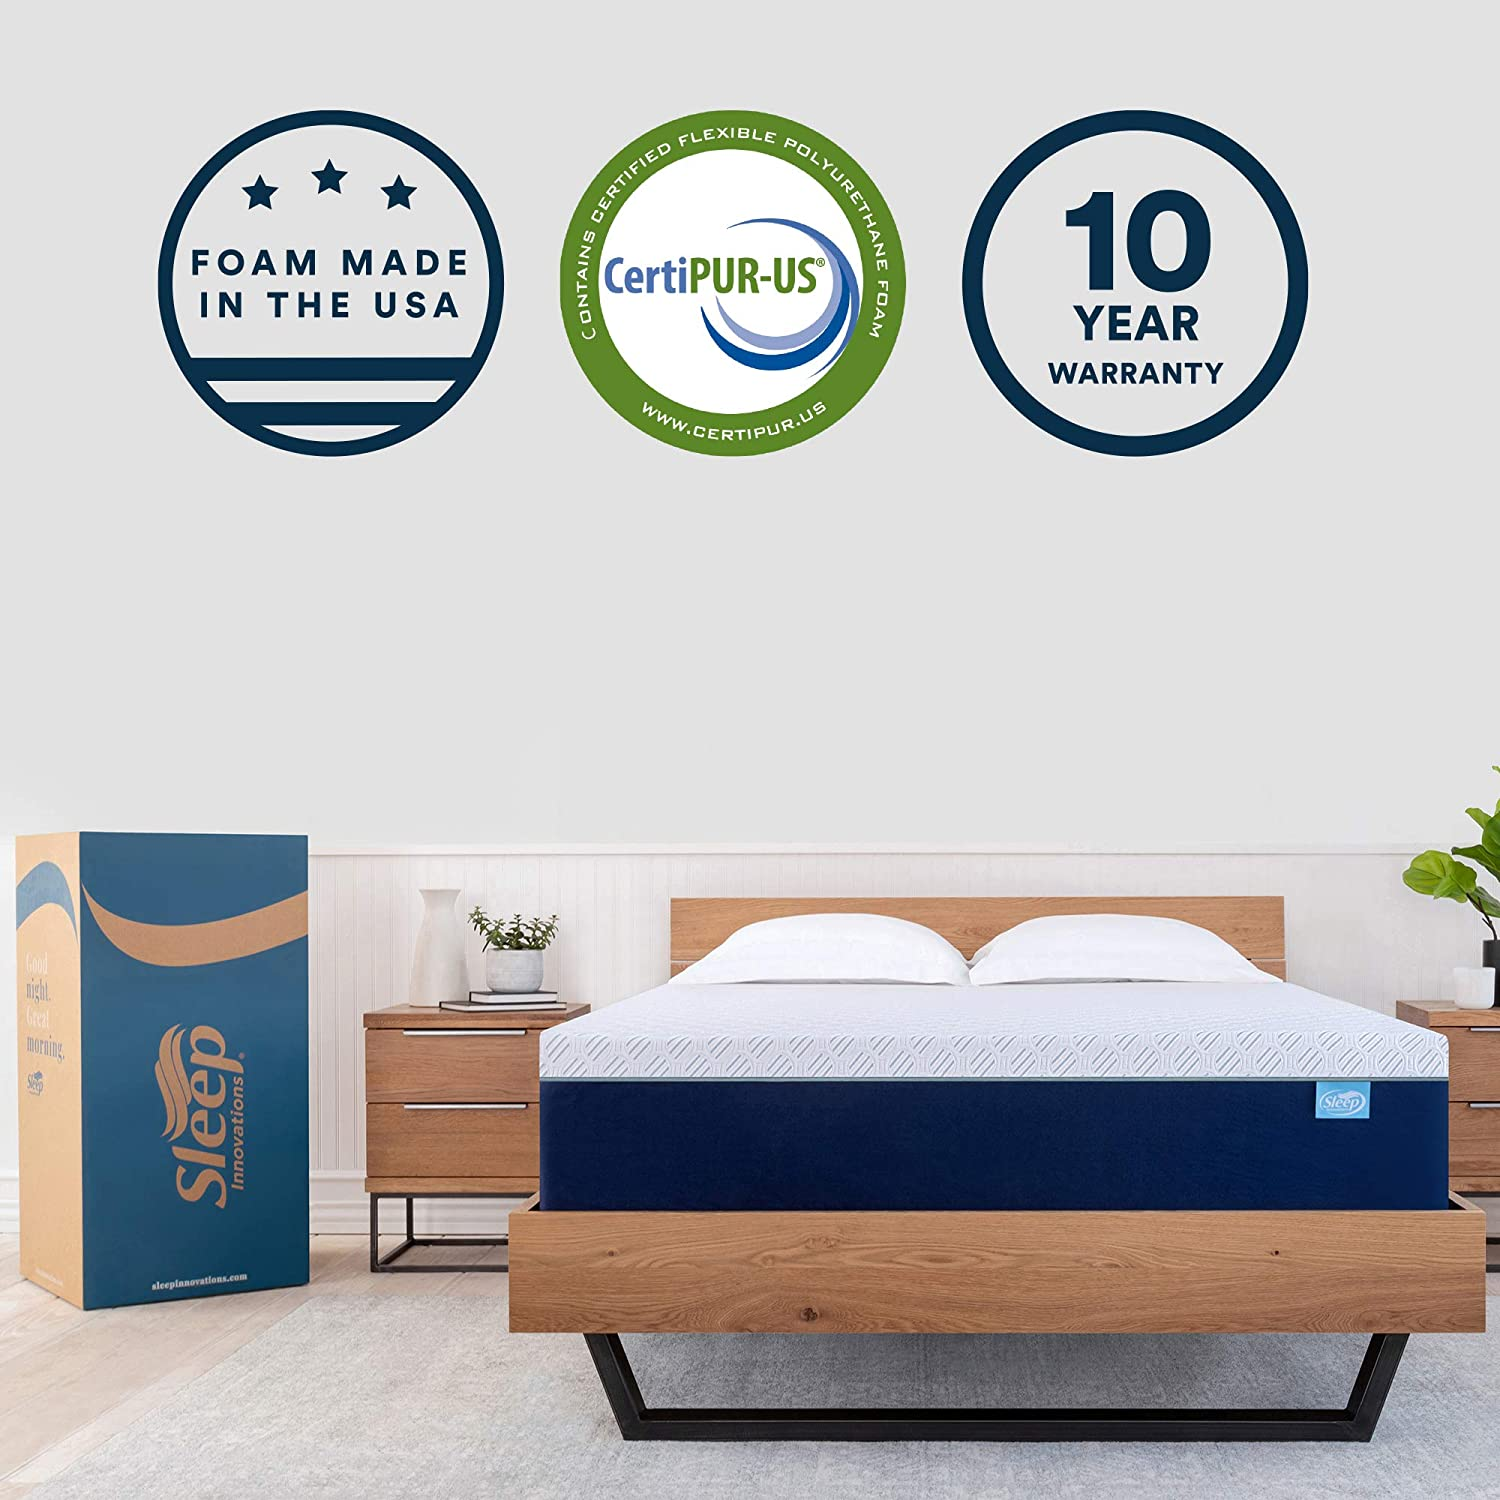 Top 10 Best Memory Foam Mattress (2020 Review & Buying Guide) 7